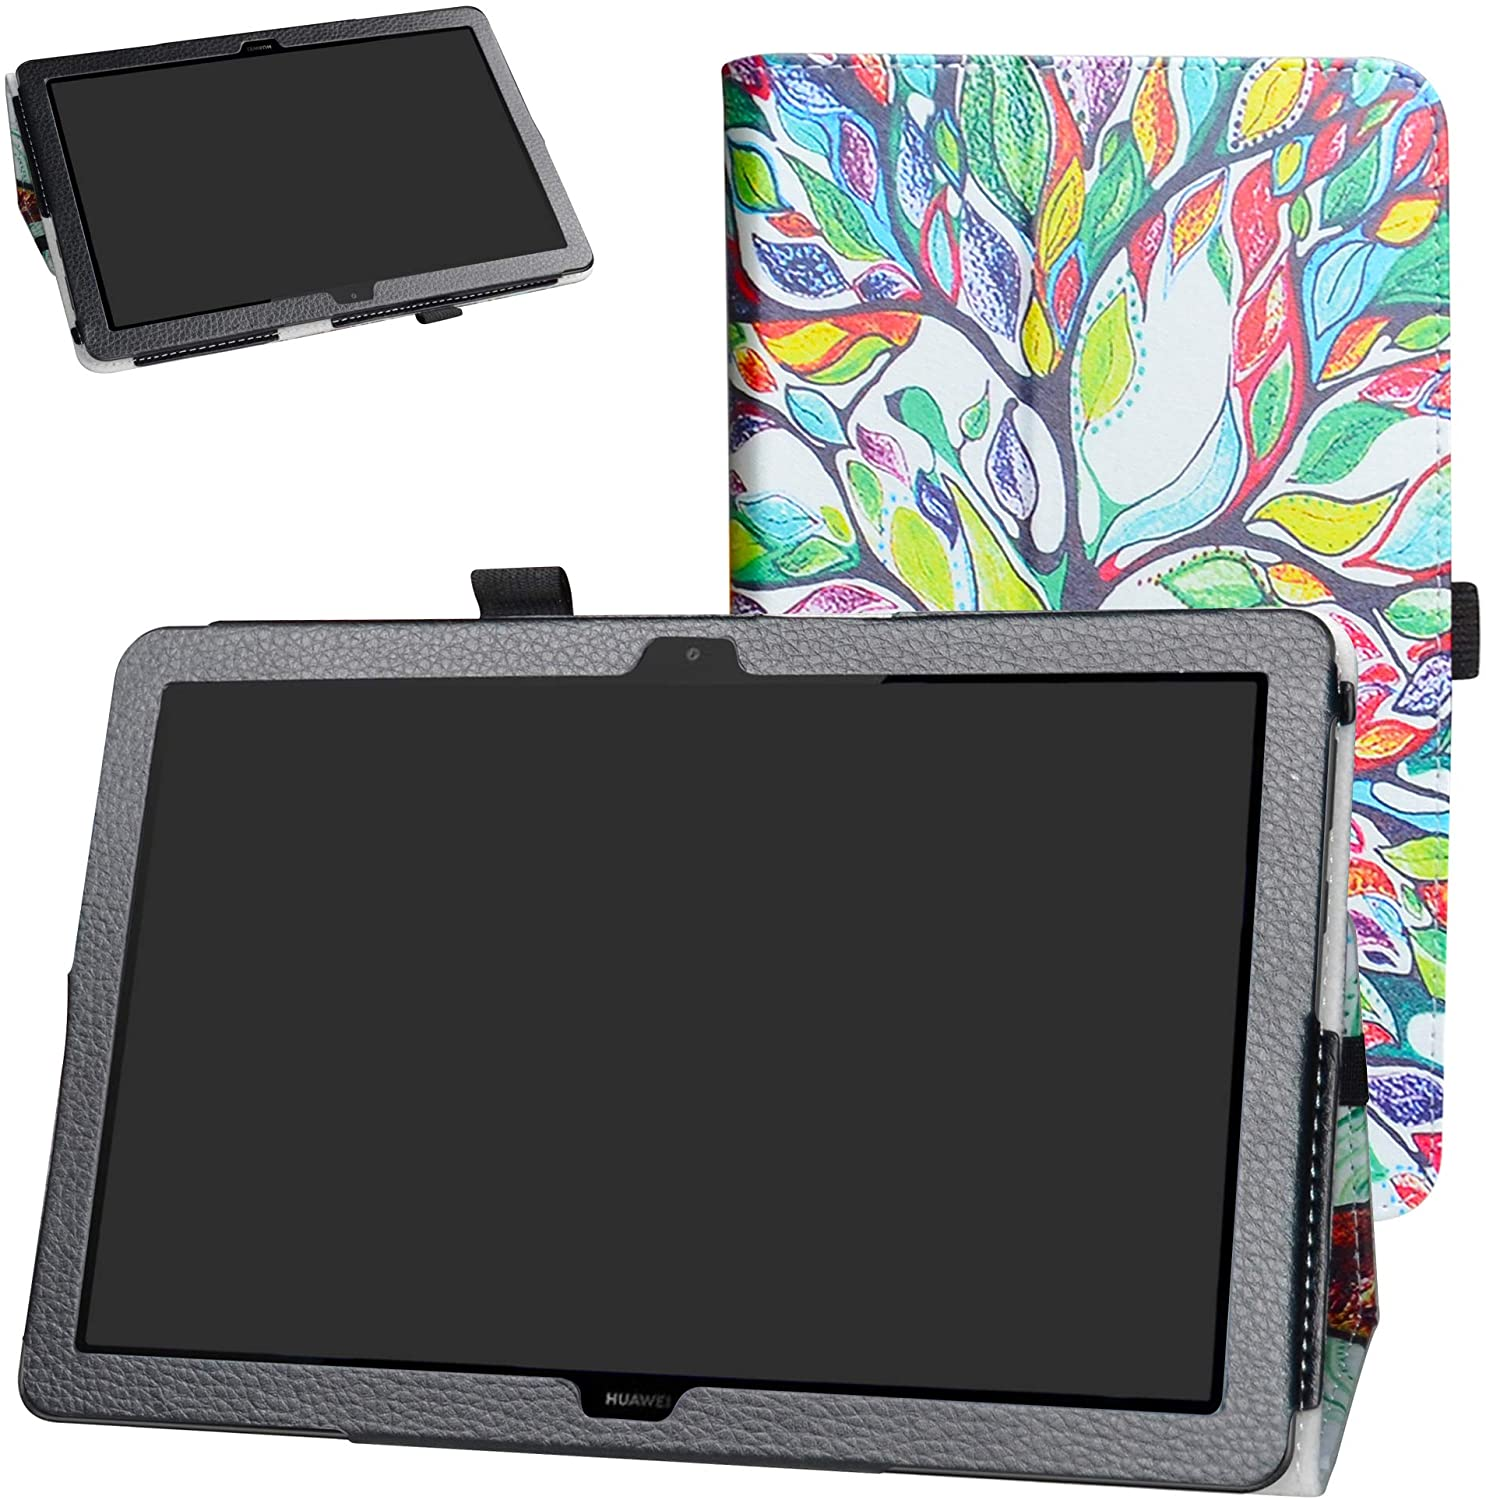 MediaPad T5 10-Inch 2018 Case,Bige PU Leather Folio 2-Folding Stand Cover for Huawei MediaPad T5 10-Inch 2018 Tablet,Love Tree